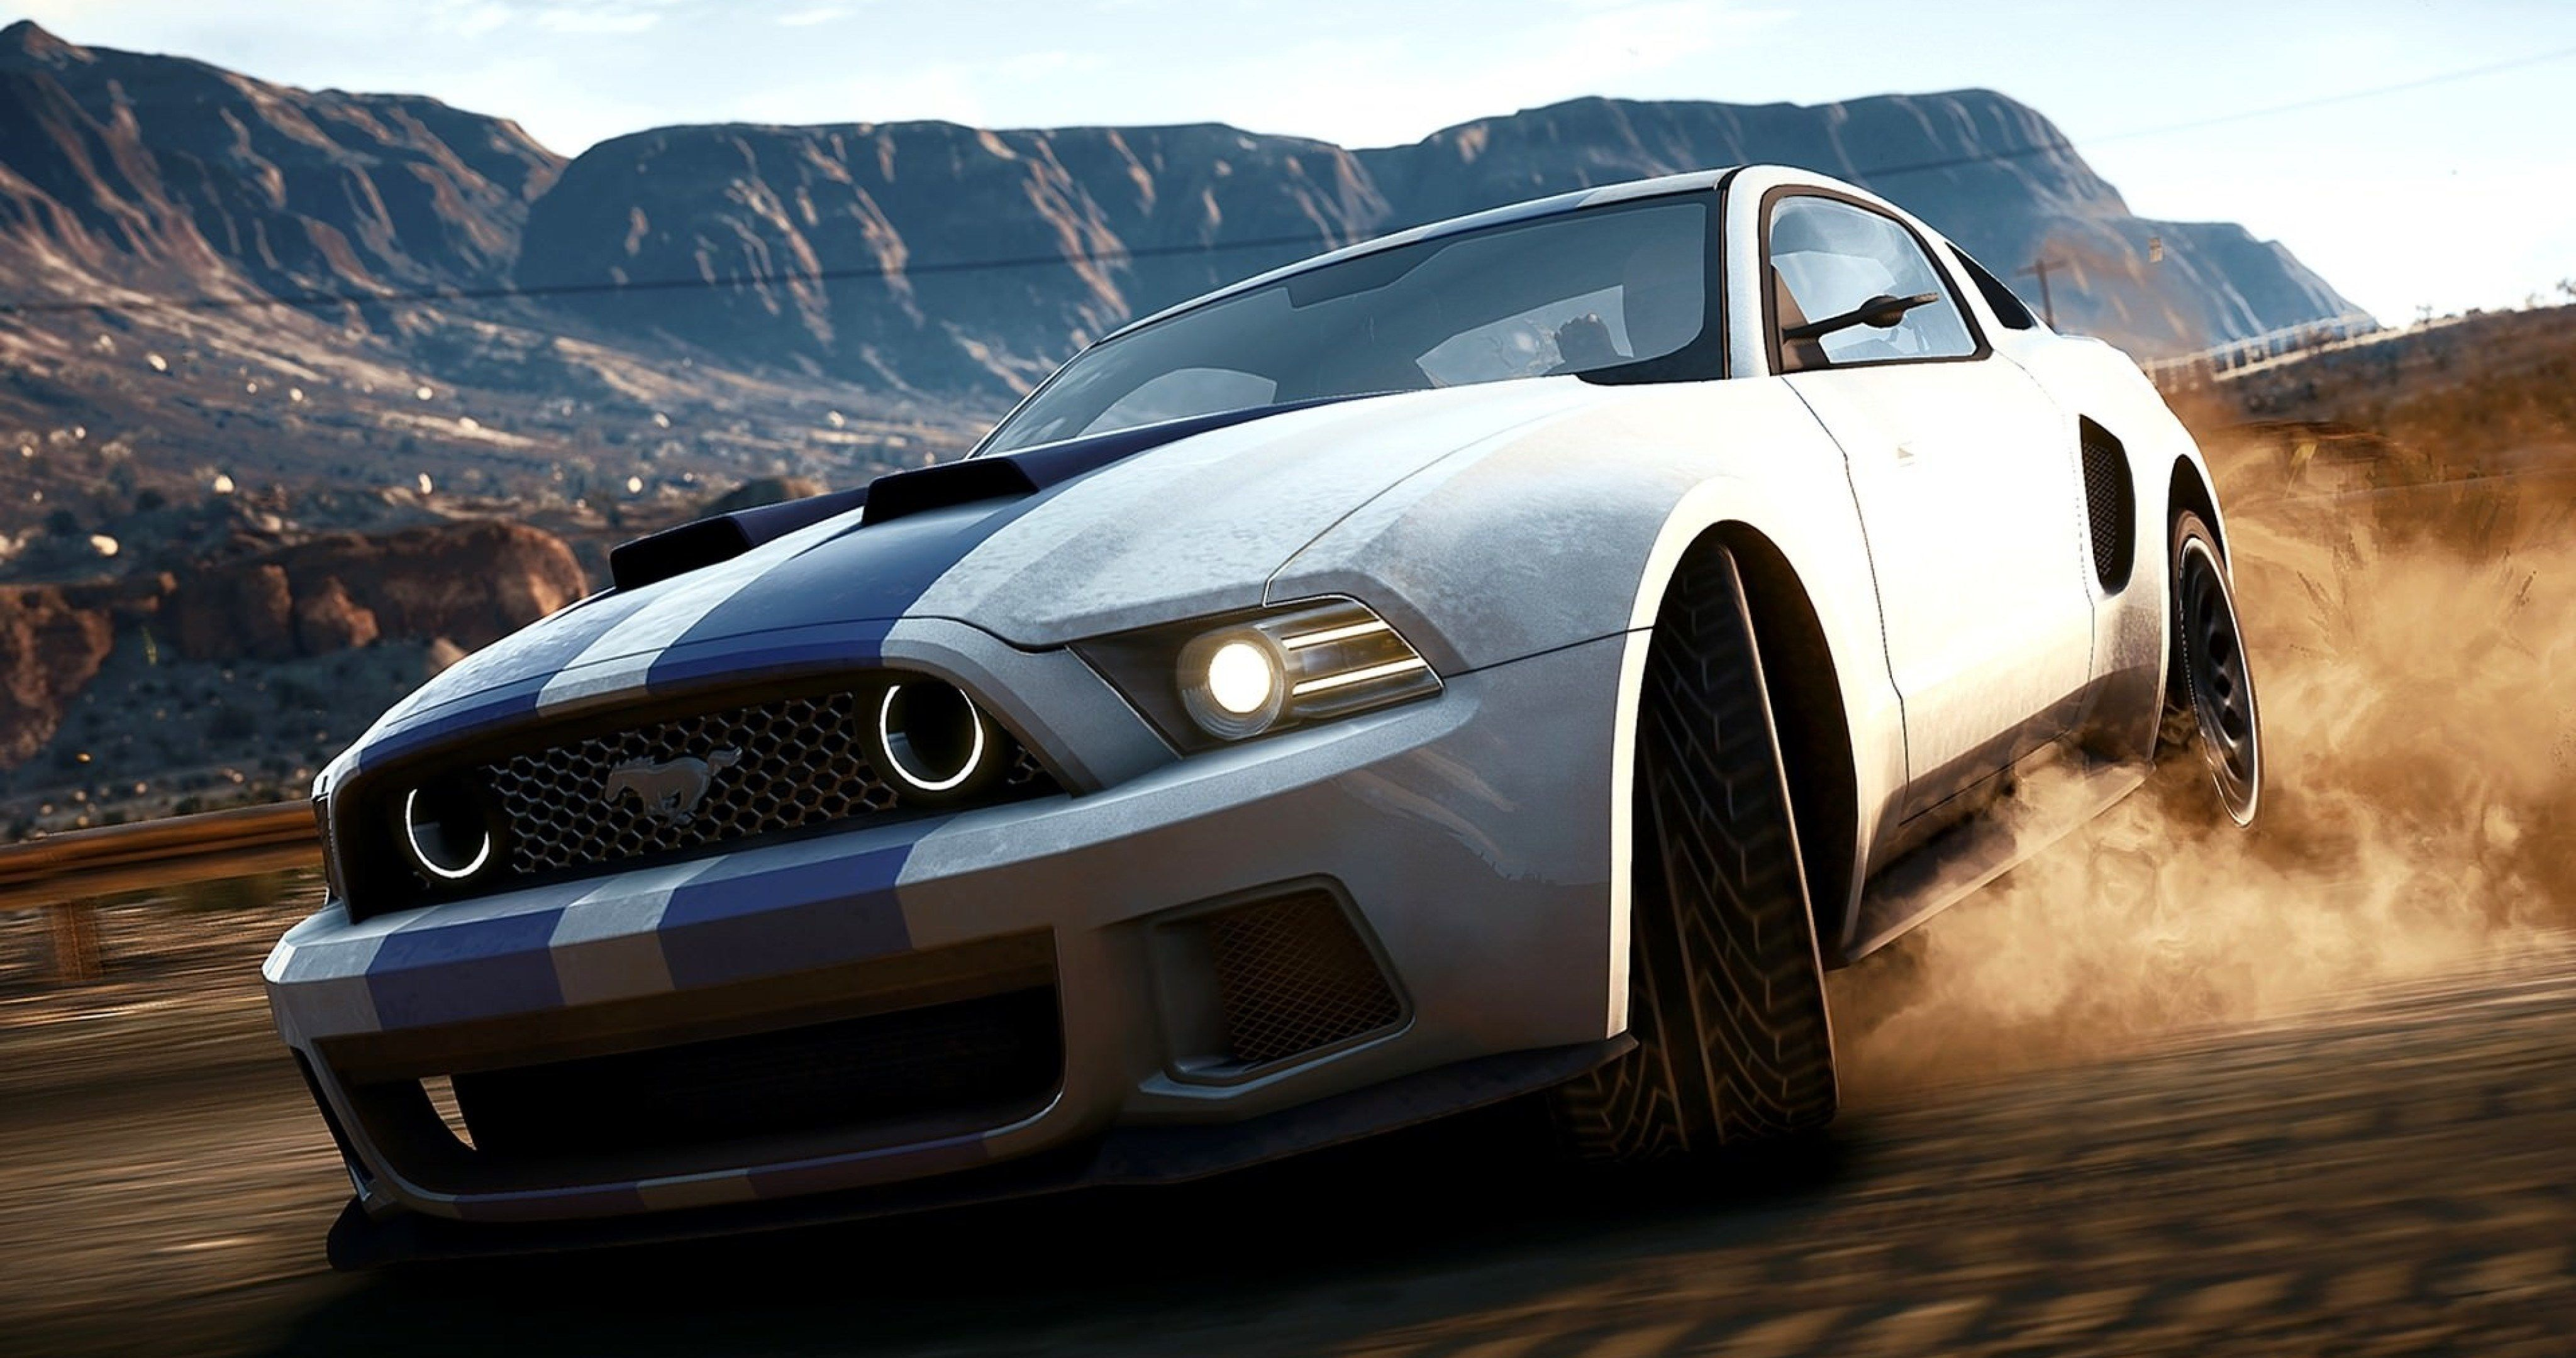 Game need for speed rivals 4k ultra hd wallpaper ololoshenka game need for speed rivals 4k ultra hd wallpaper voltagebd Choice Image